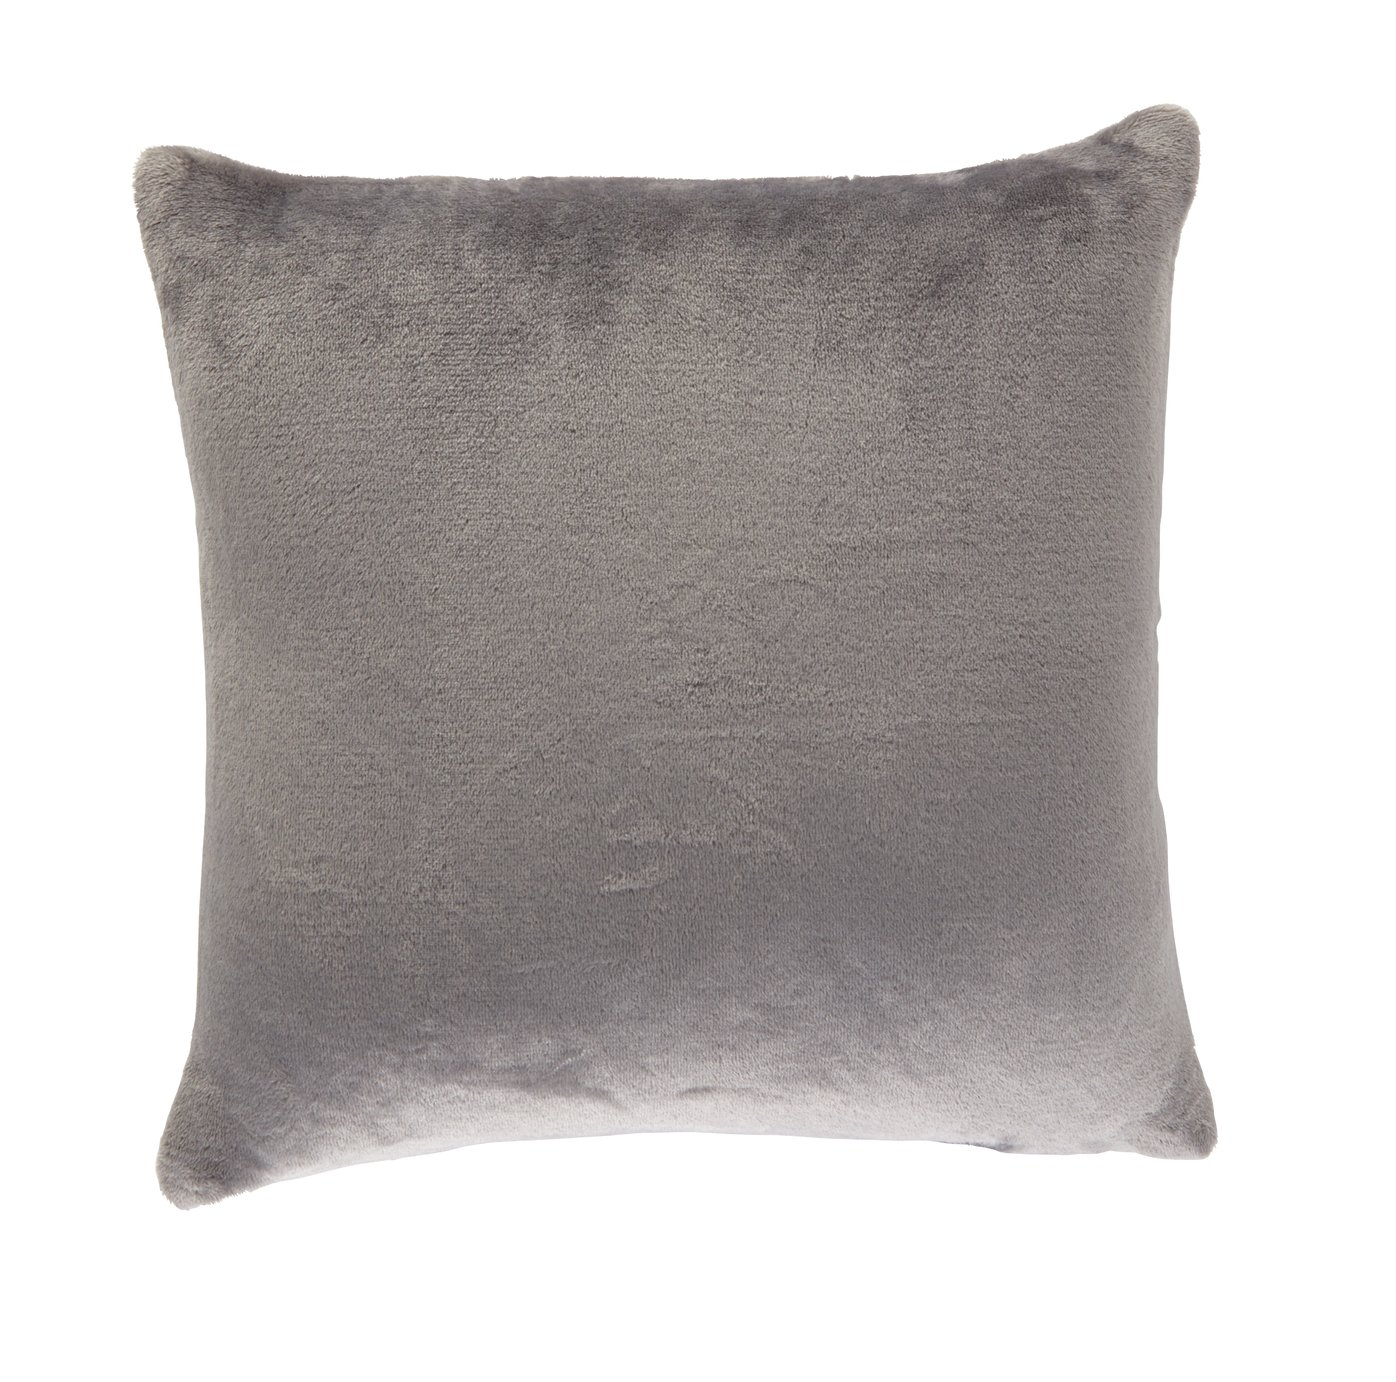 Argos Home Supersoft Cushion review